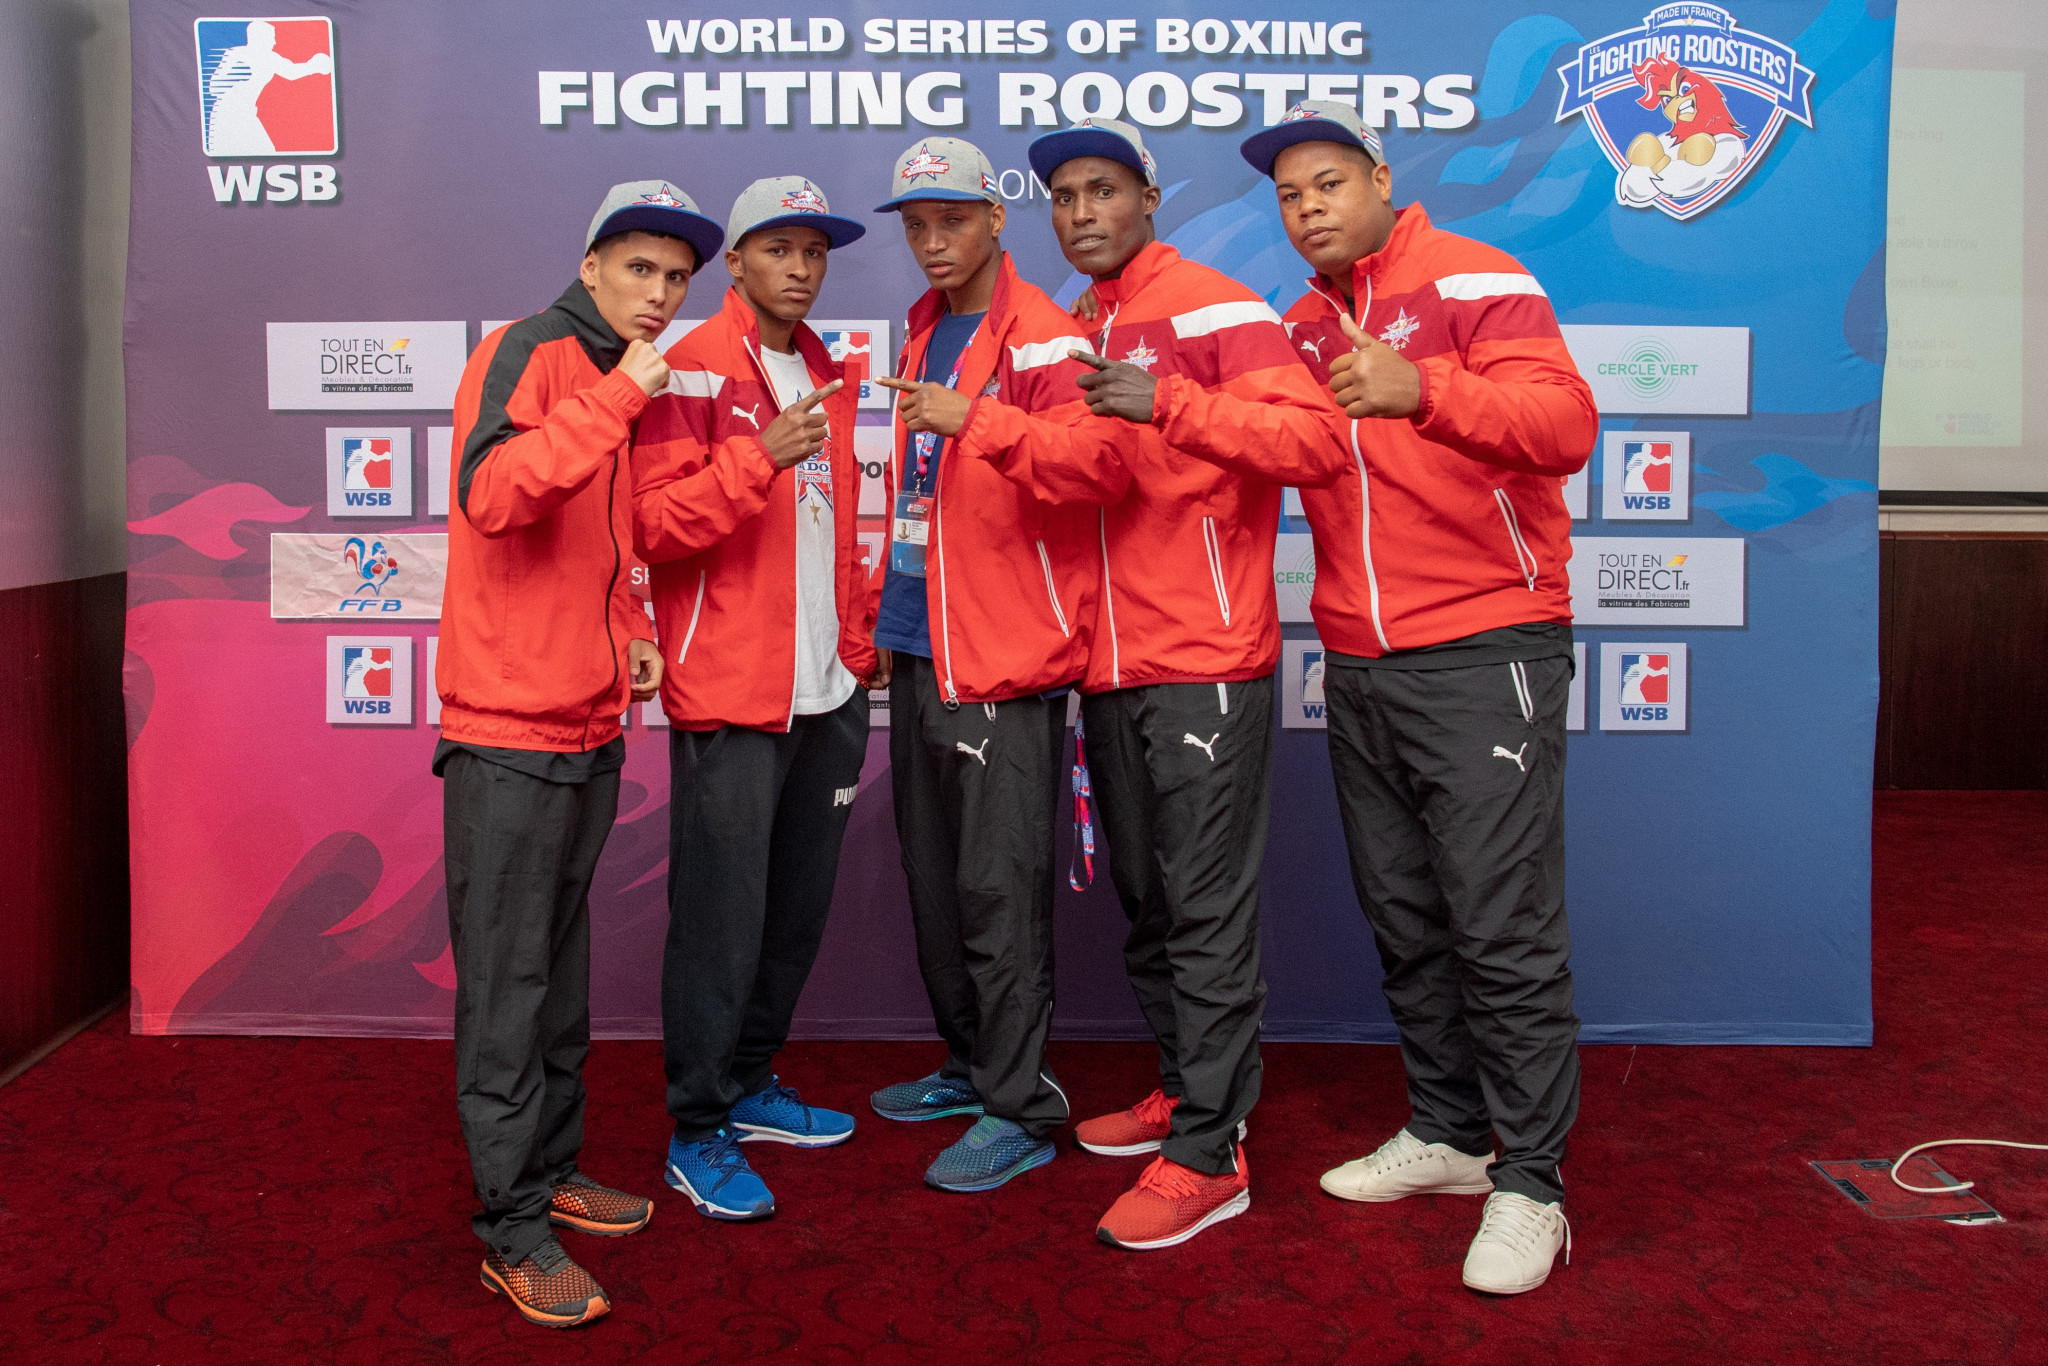 Cuba Domadores earn narrow first-leg lead in World Series of Boxing semi-final